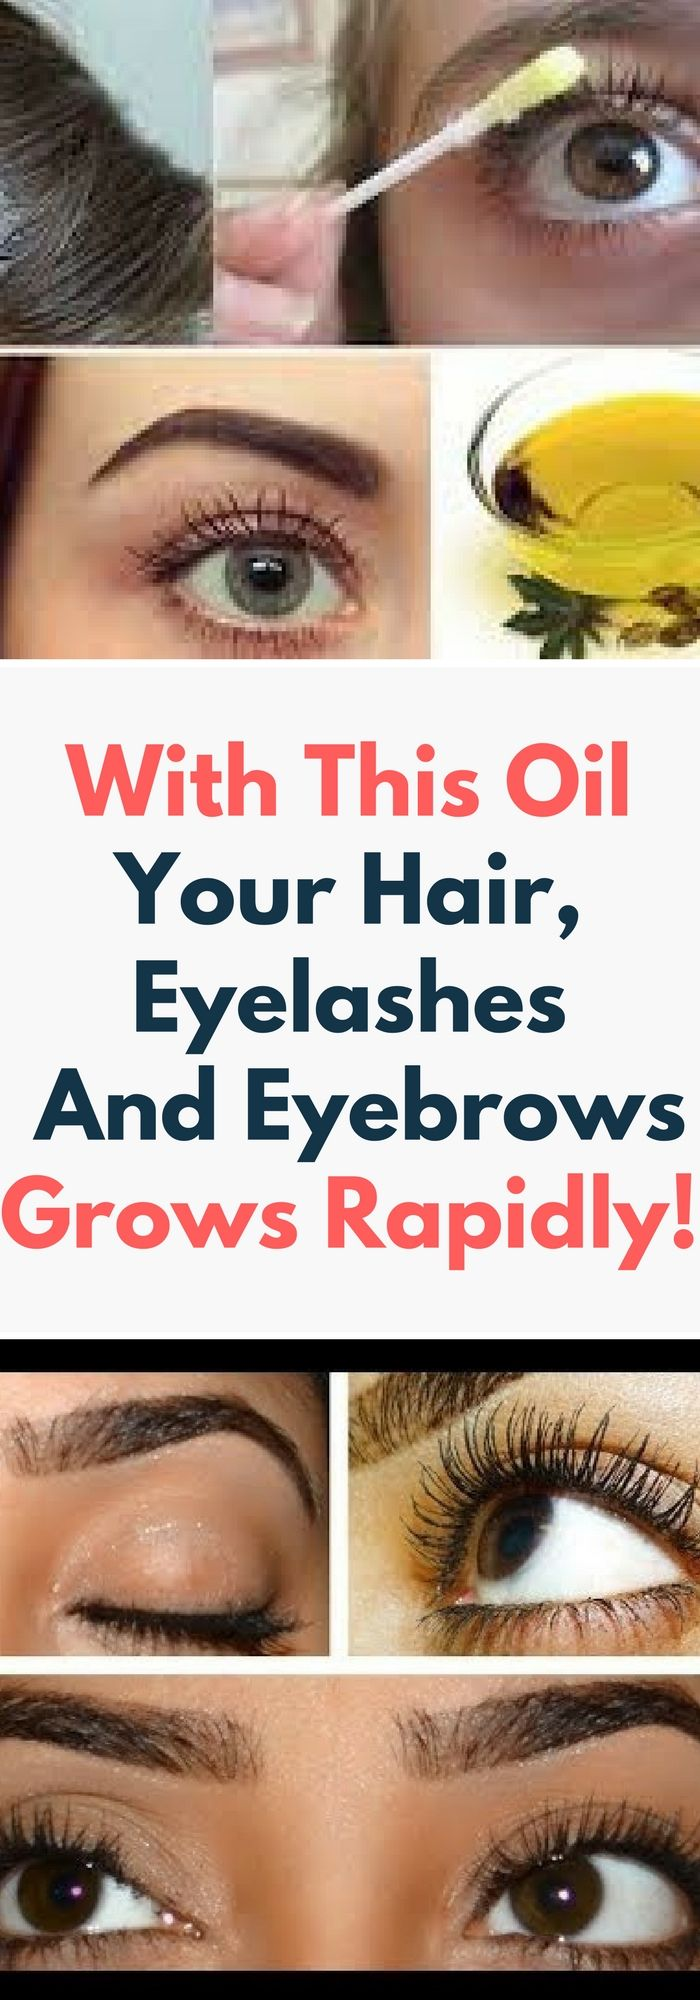 With This Oil Your Hair, Eyelashes And Eyebrows Grows Rapidly.. Need to know.!